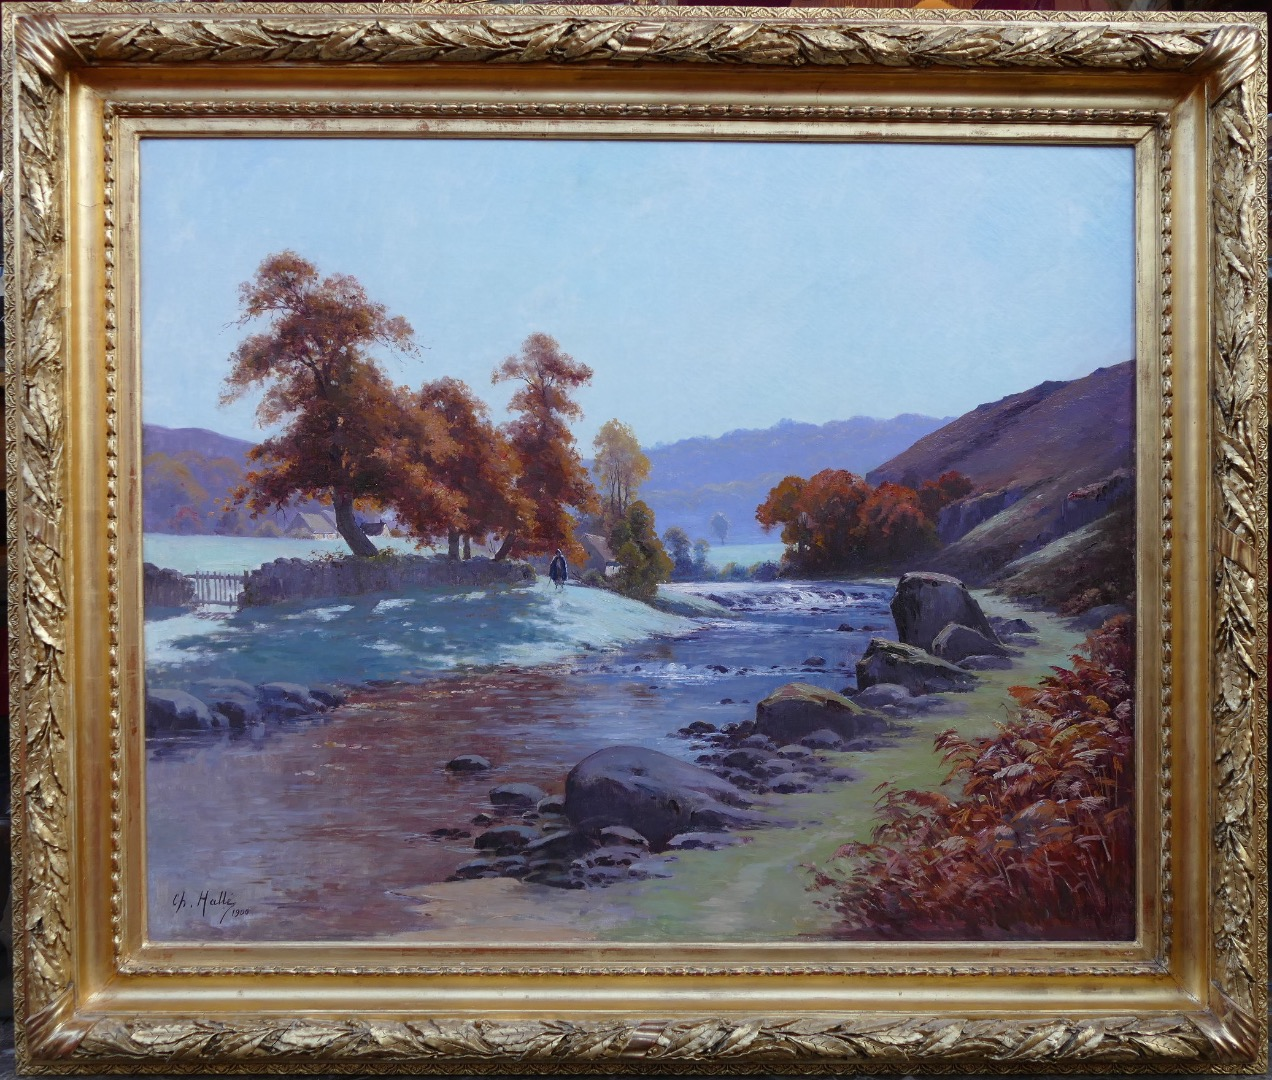 HALLE Charles Painting landscape 20th Century Crozant School Creuse Landscape Oil on canvas signed